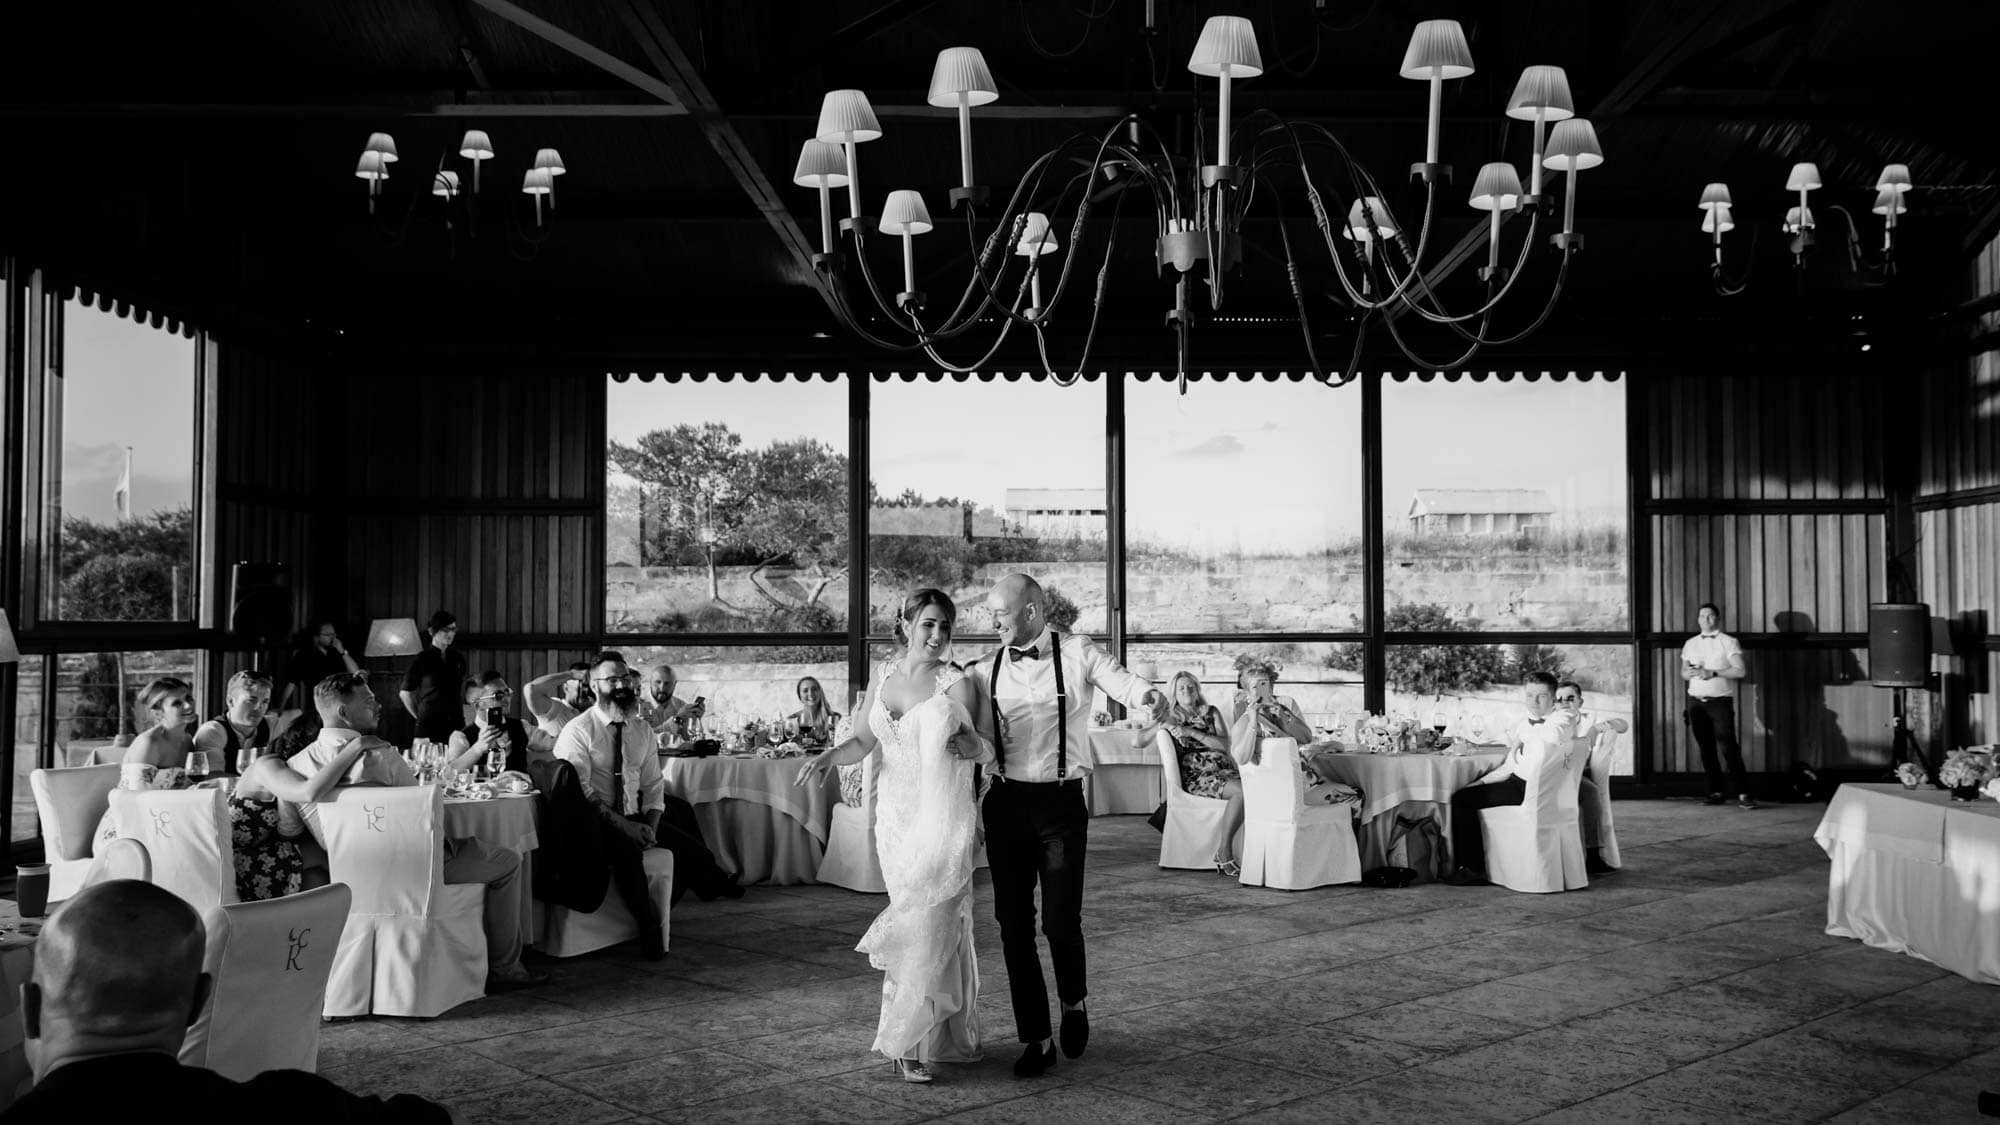 The bride and groom enjoy their first dance at the wedding reception at Cap Rocat in Mallorca